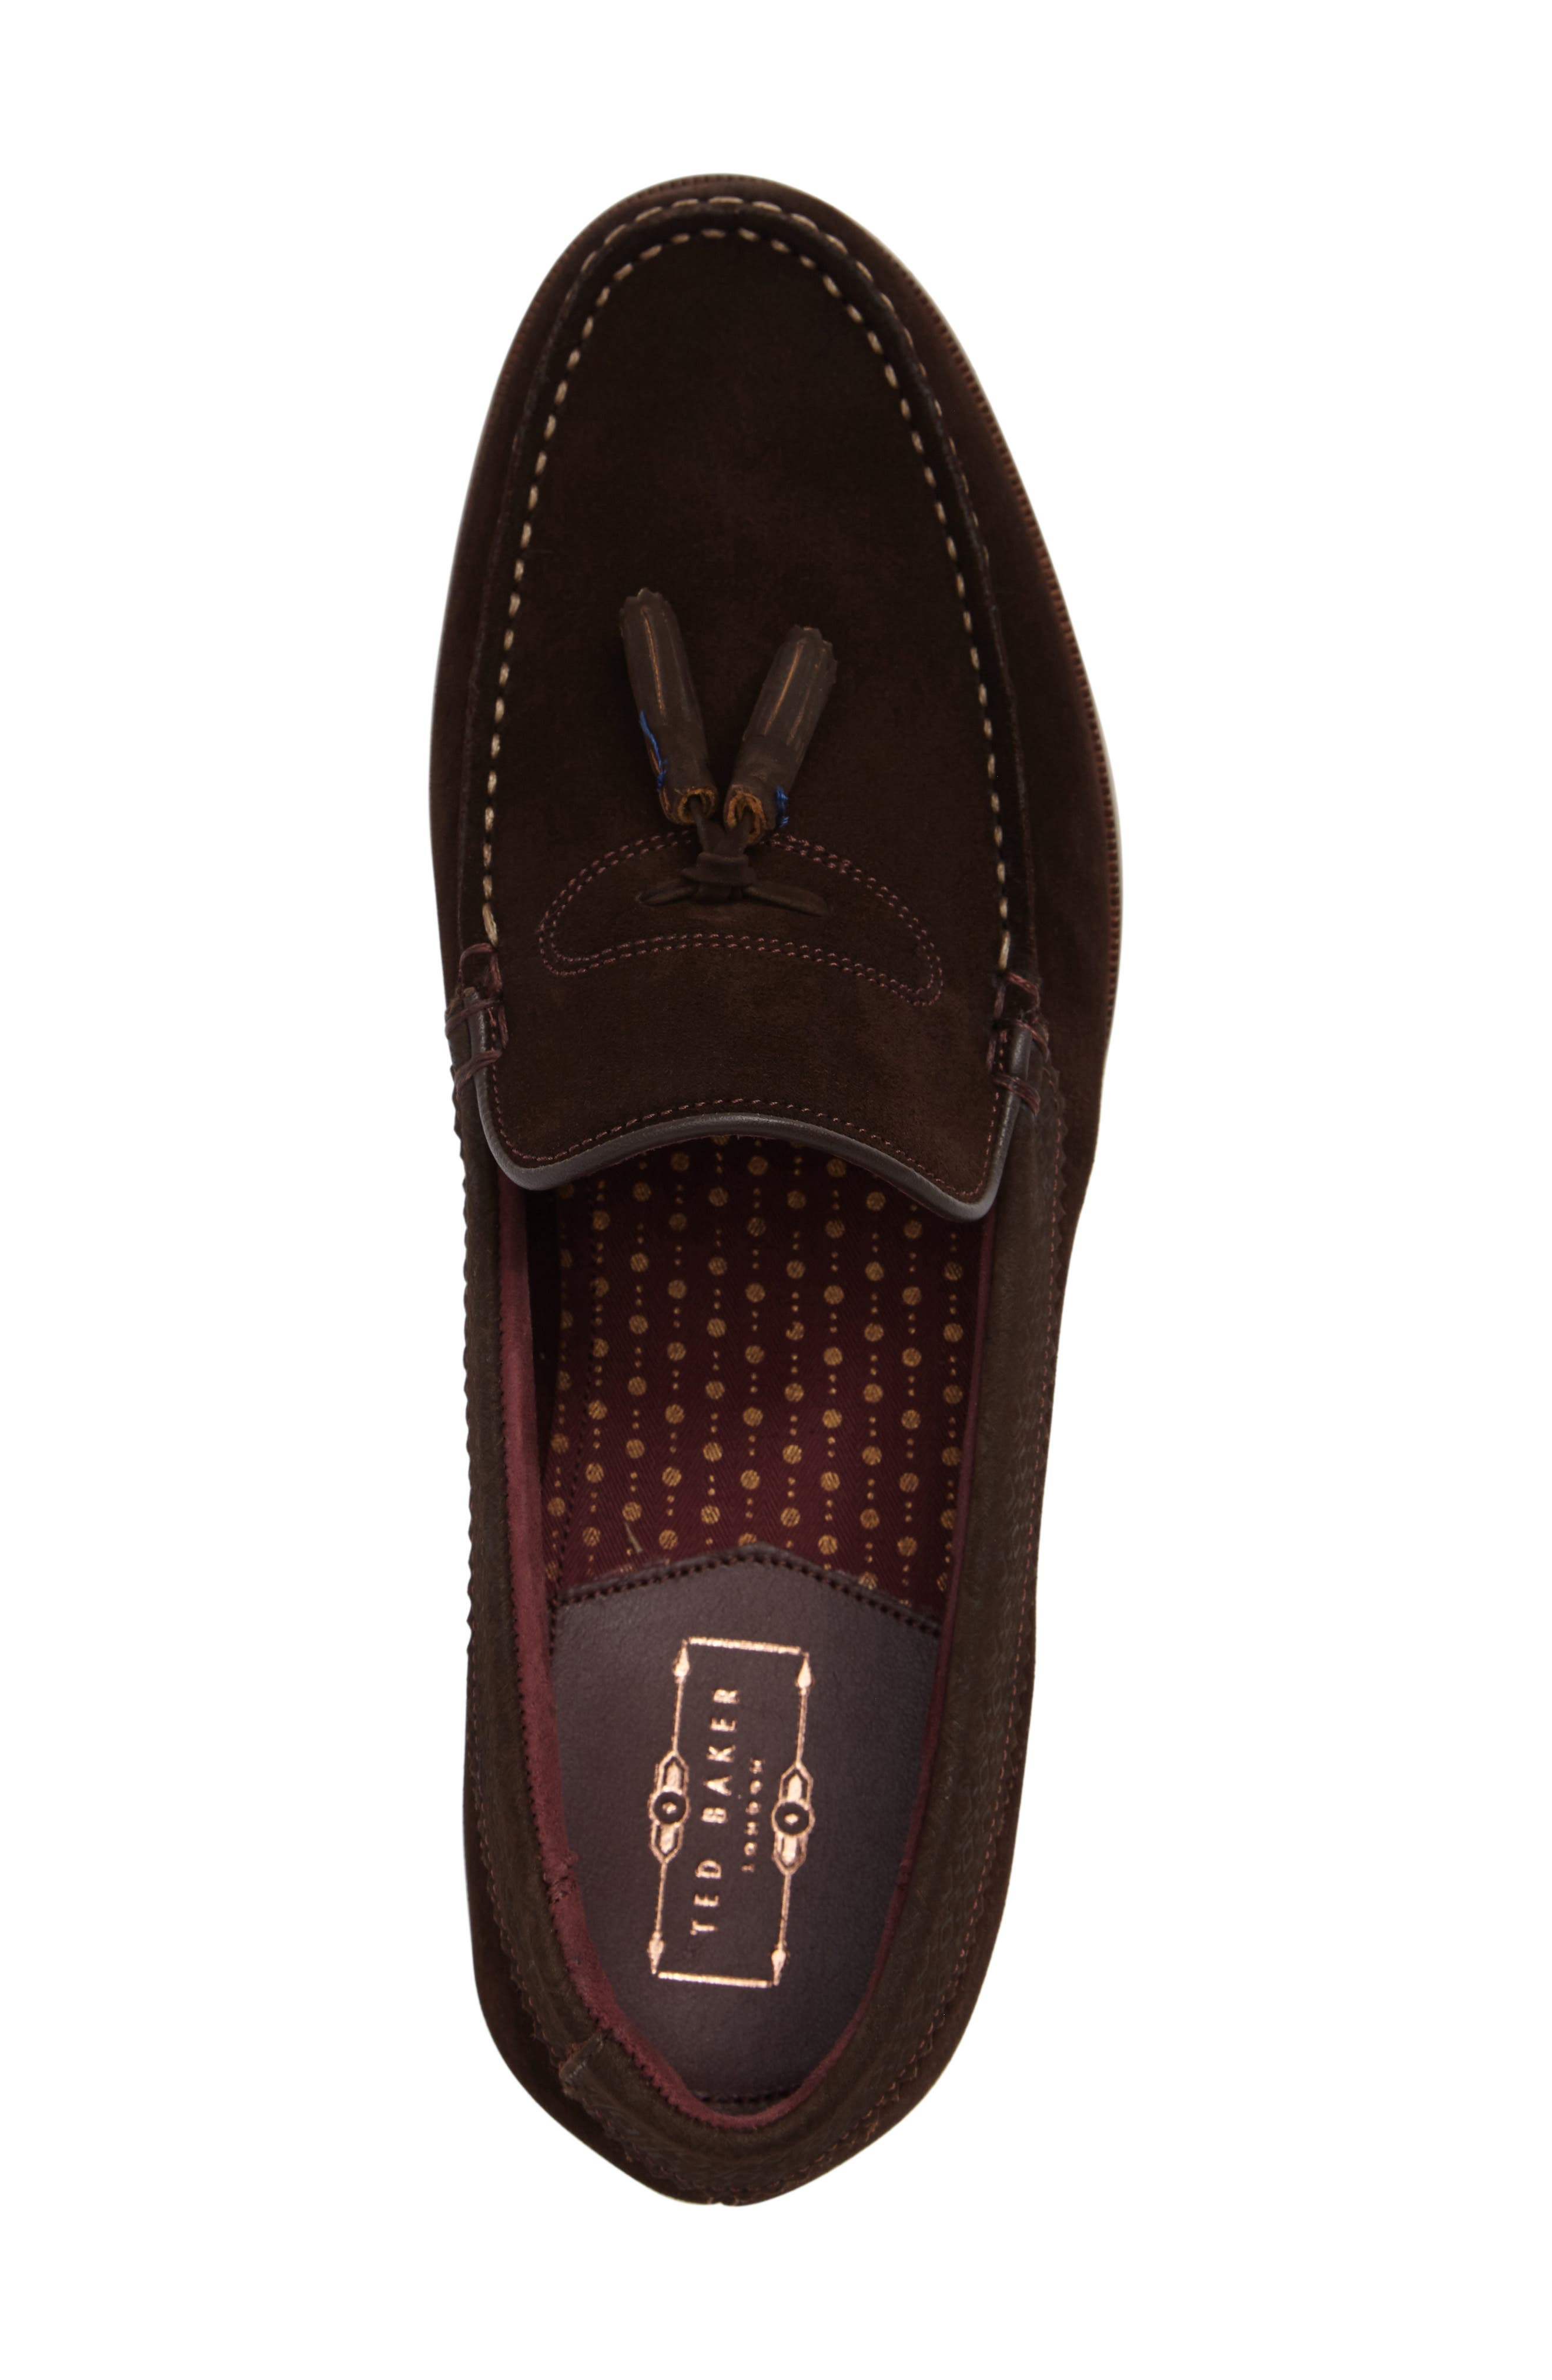 Dougge Tassel Loafer,                             Alternate thumbnail 3, color,                             Brown Suede